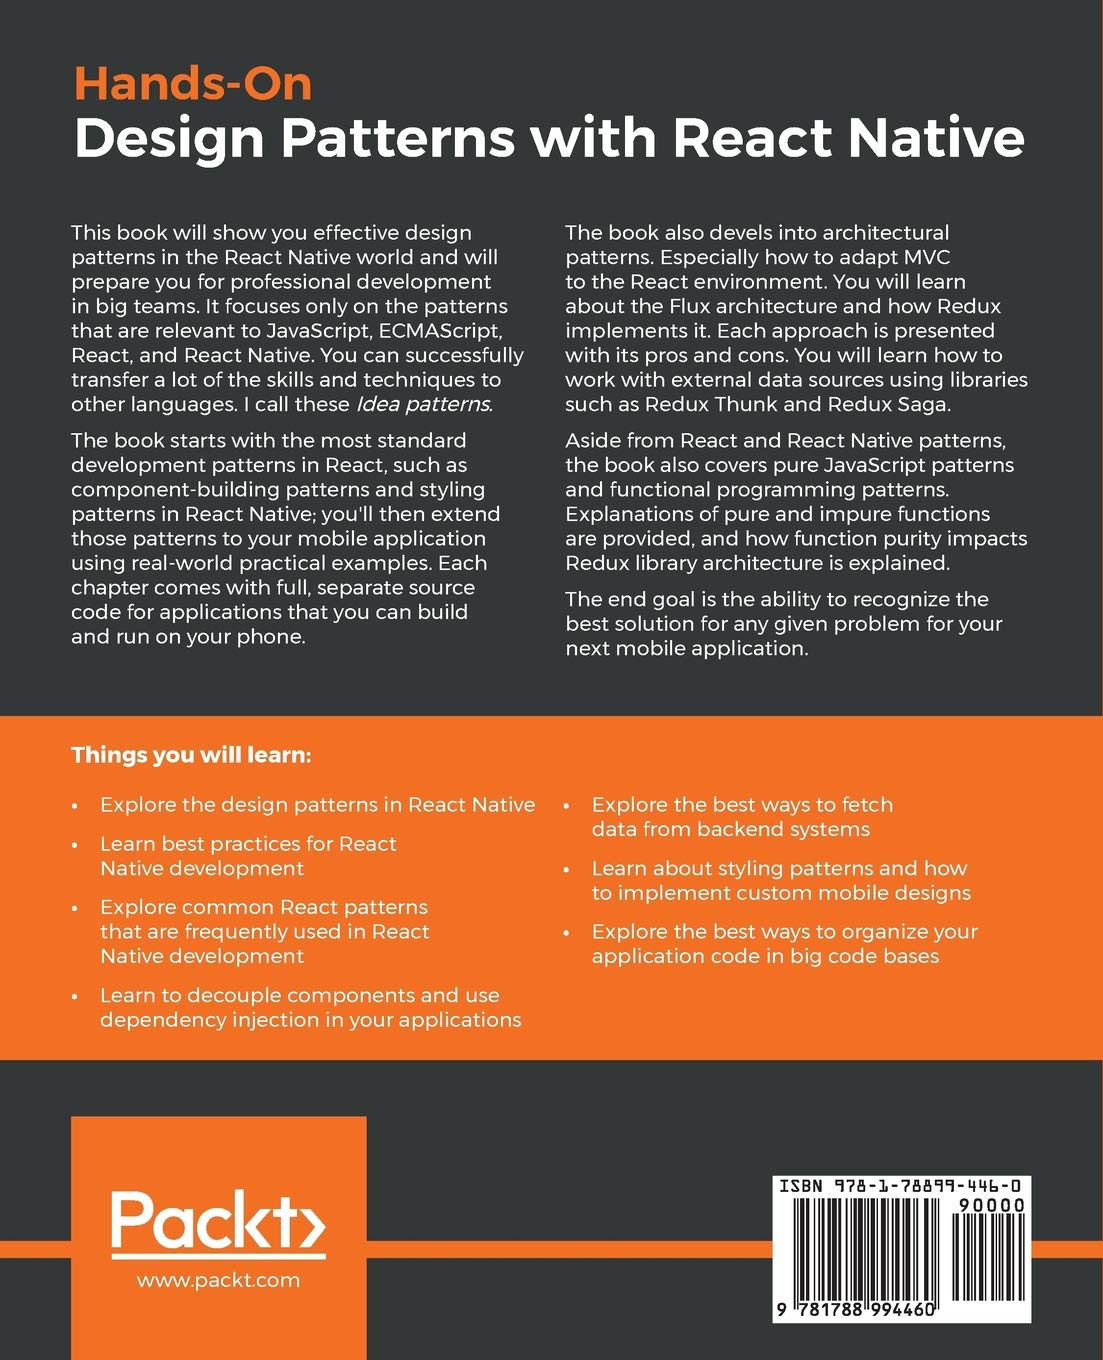 Hands-On Design Patterns with React Native: Proven